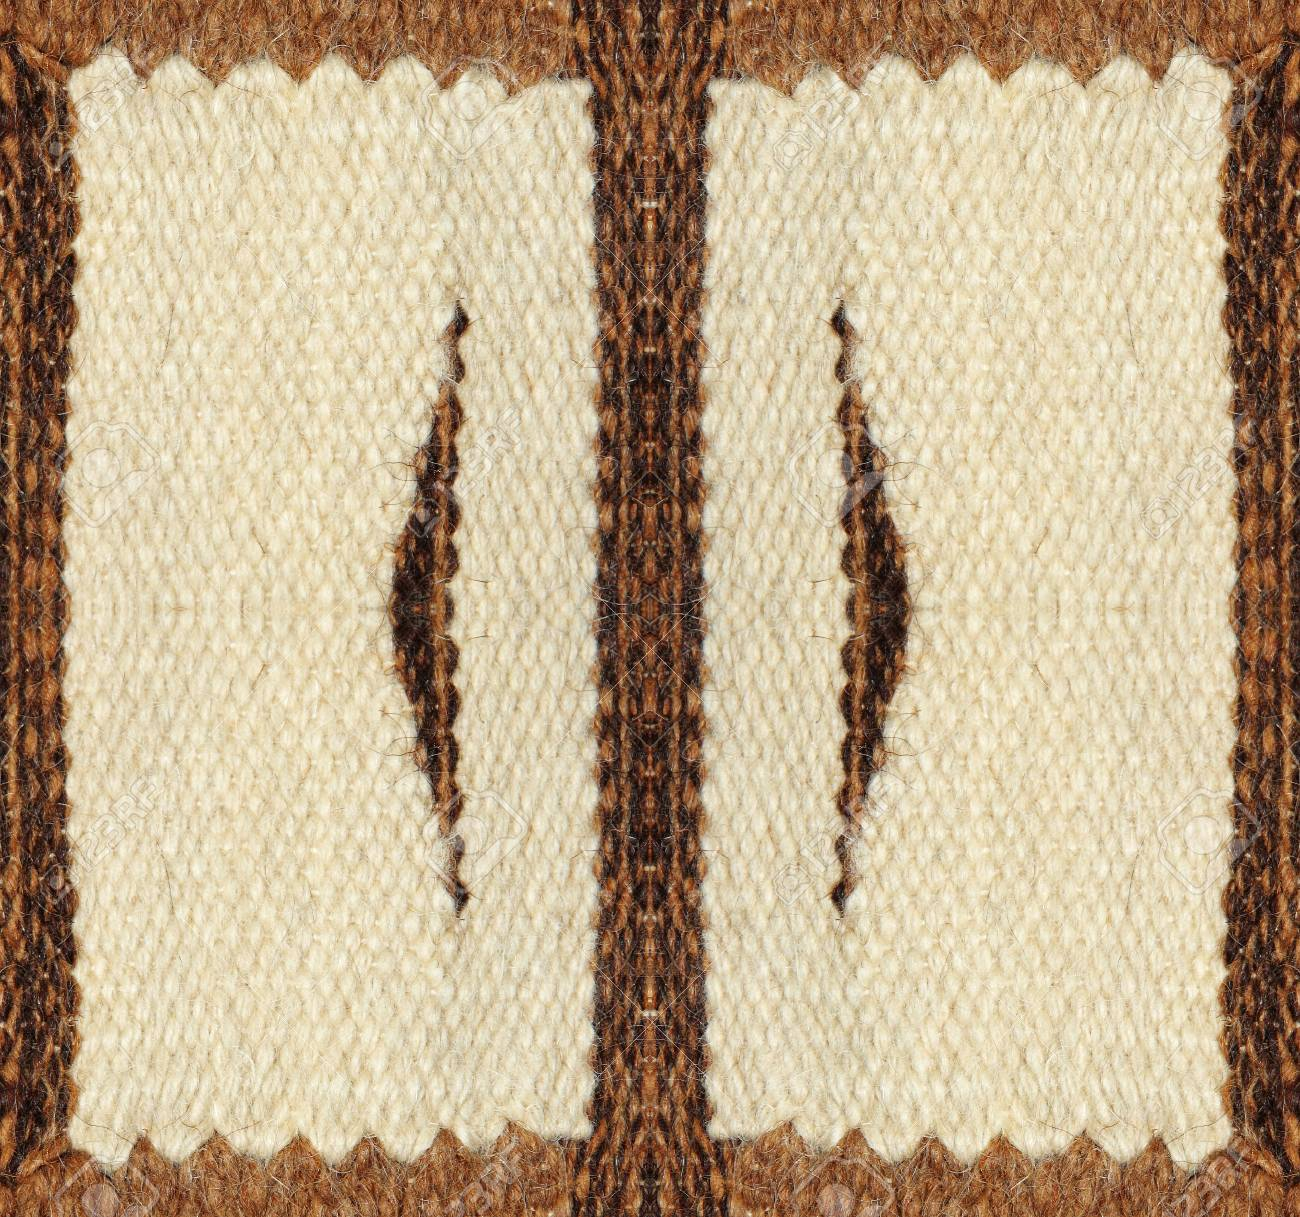 Camel Wool Fabric Texture Pattern As Abstract Symmetrical Background ...